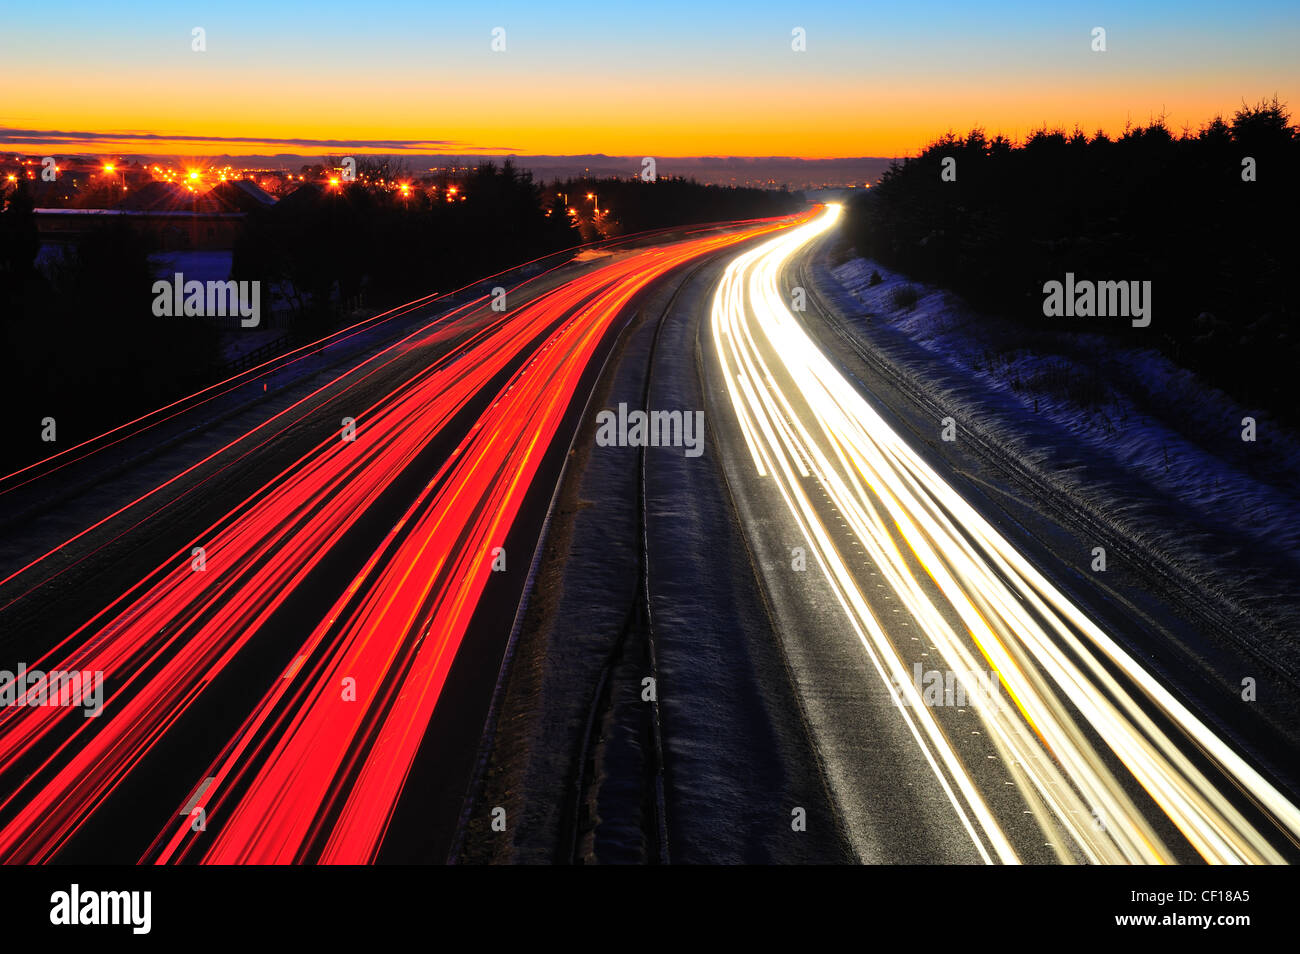 Traffic light trails on the M8 motorway in Scotland between Glasgow and Edinburgh. Taken at night in the winter - Stock Image